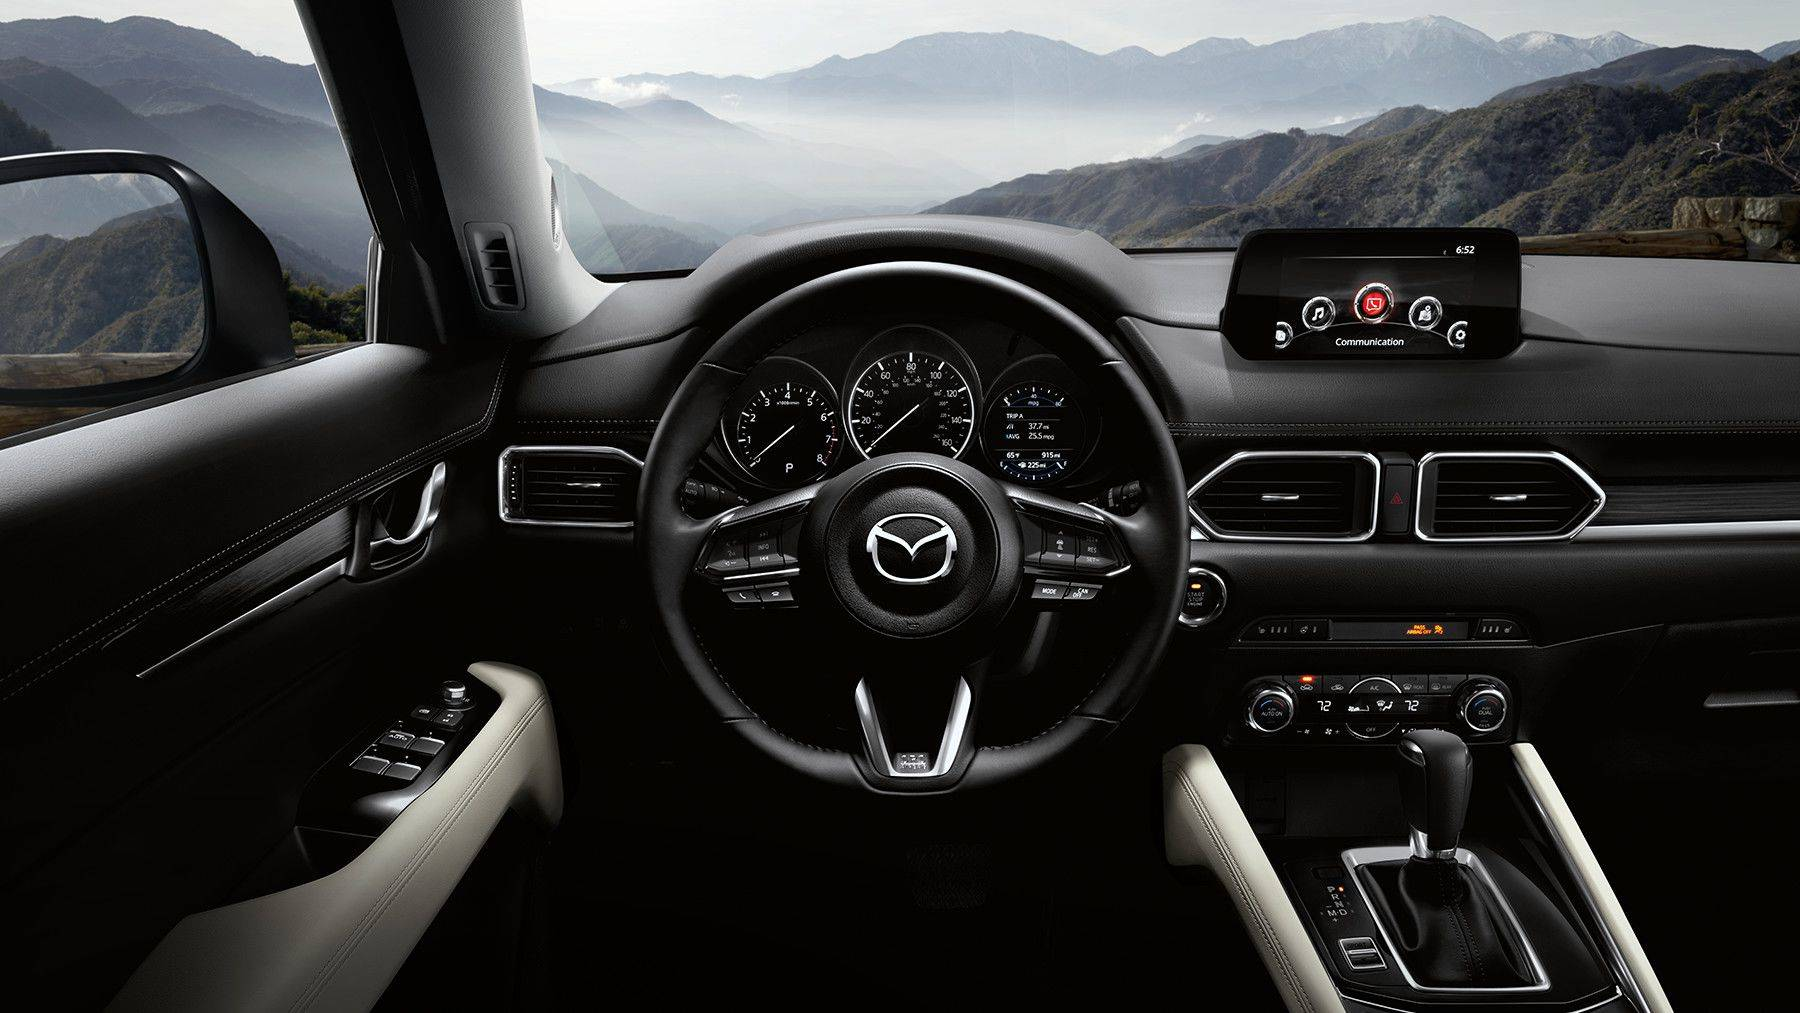 Take Control of the Road in the 2018 Mazda CX-5!